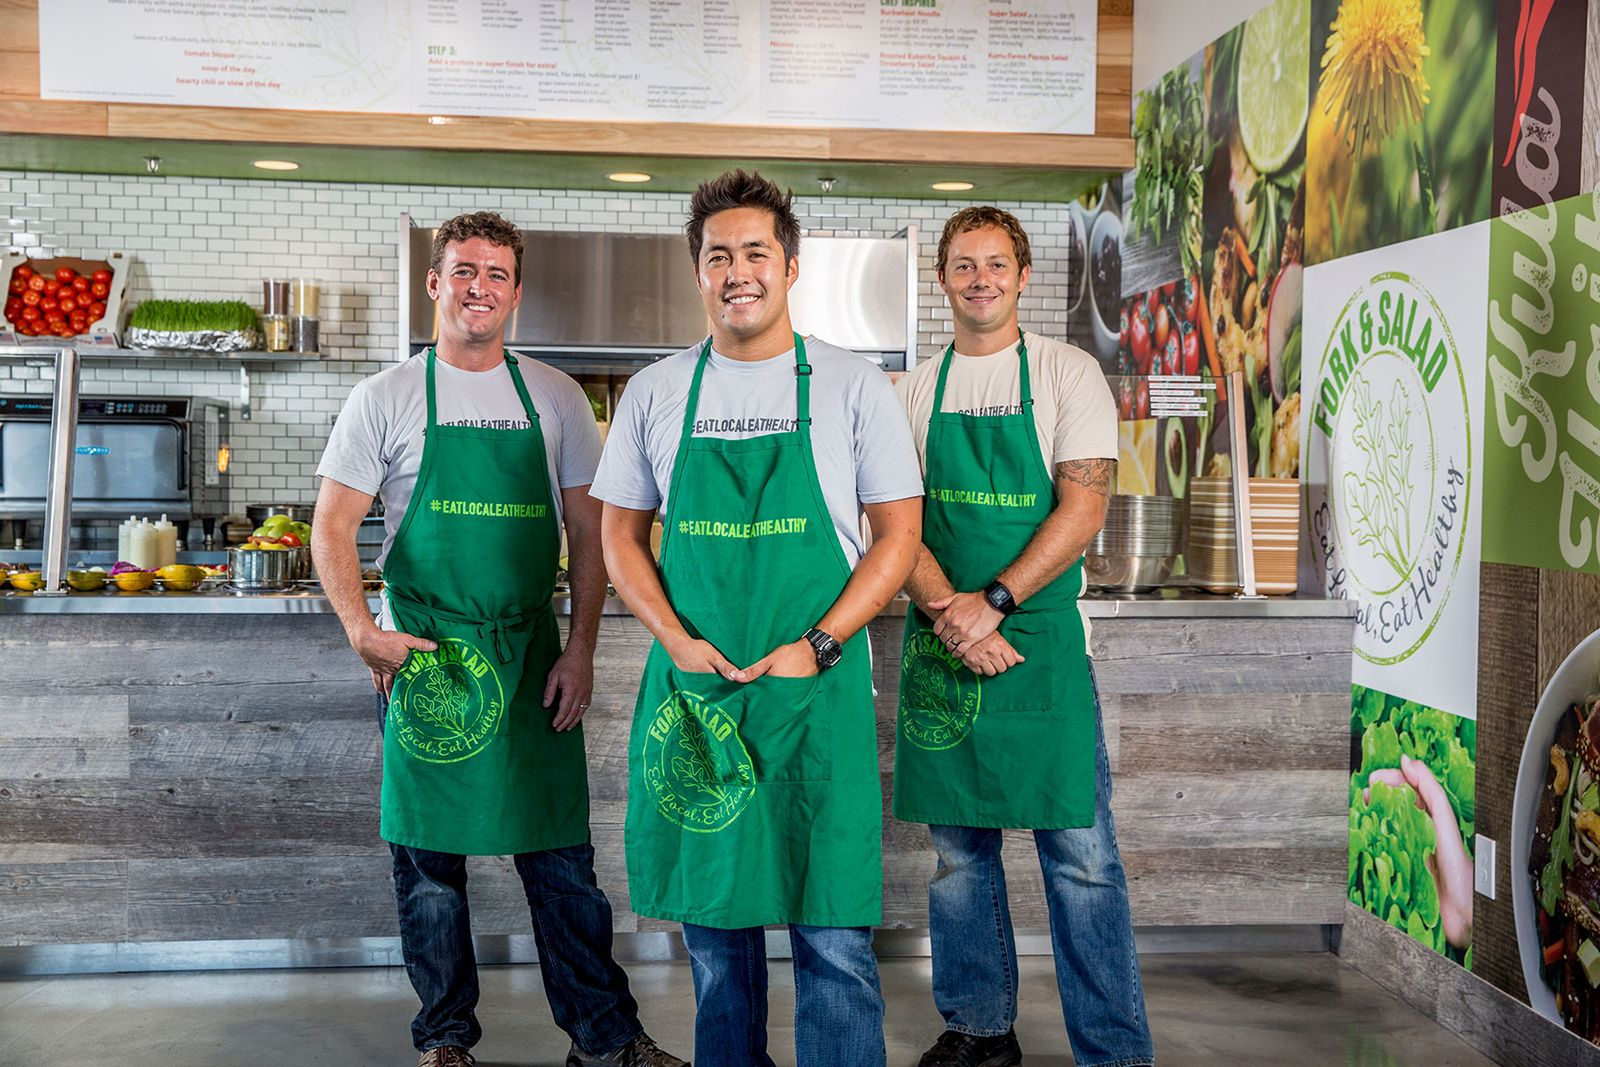 Maui-based Fork & Salad founders and chef-owners Jaron Blosser, Cody Christopher and Travis Morrin.